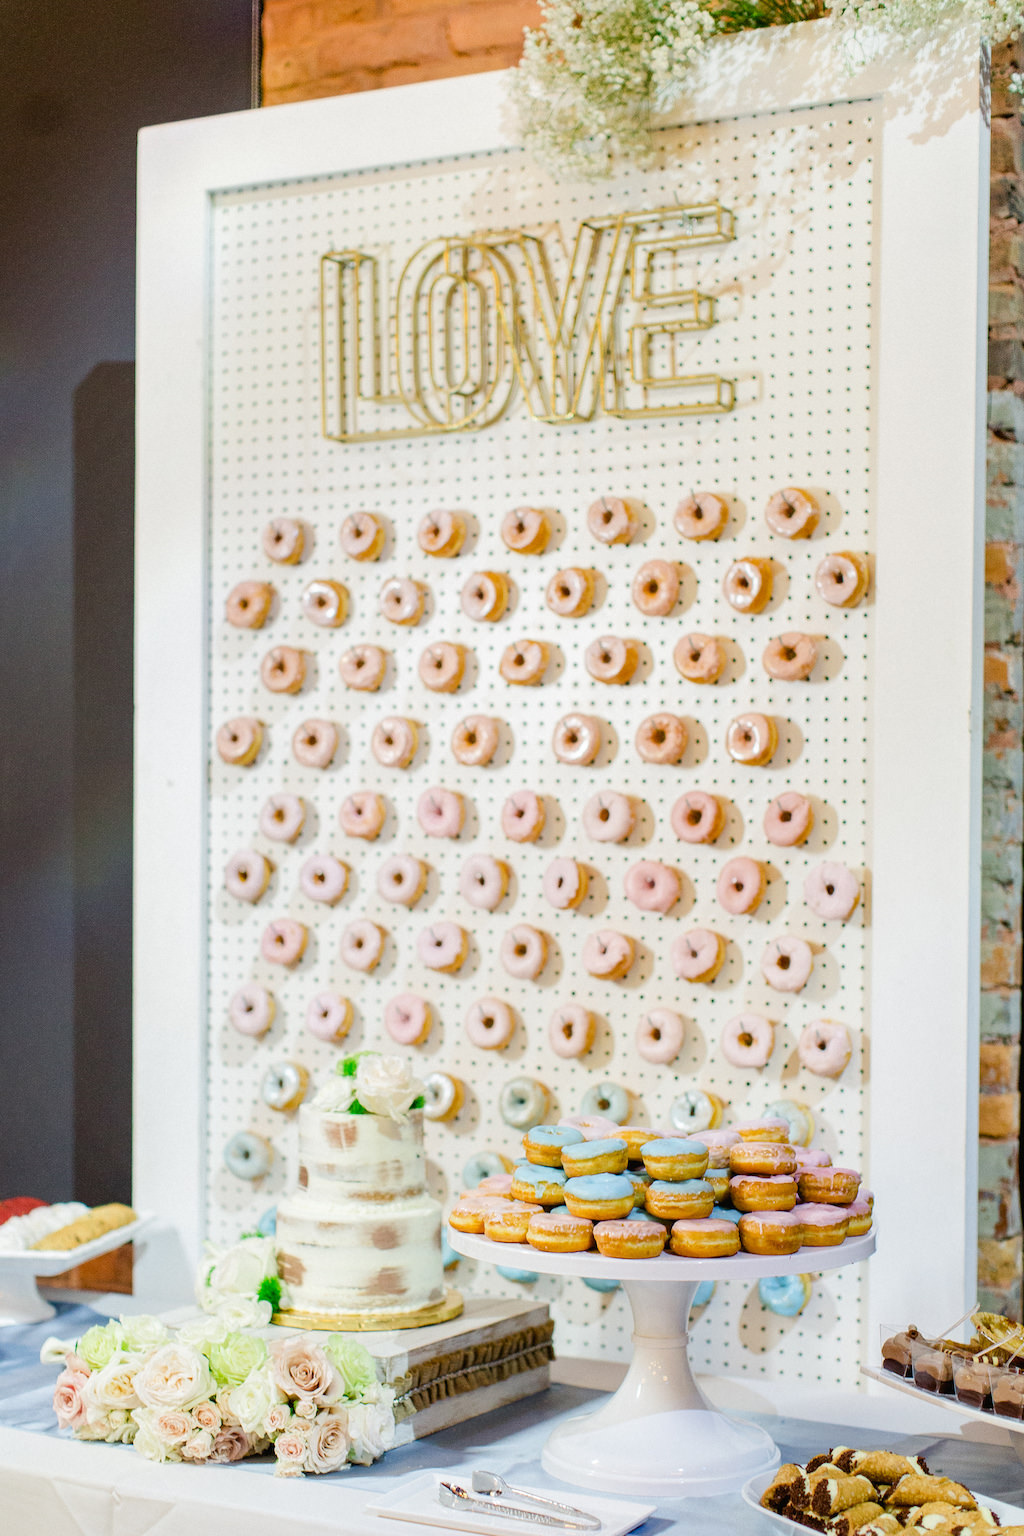 Wedding Reception Dessert Table, White Wooden Pallet Donut Wall with Gold Love Sign, White Pedestal with Donuts, Two Tier Semi Naked Wedding Cake and Blush Pink, Ivory and Greenery Floral Decor